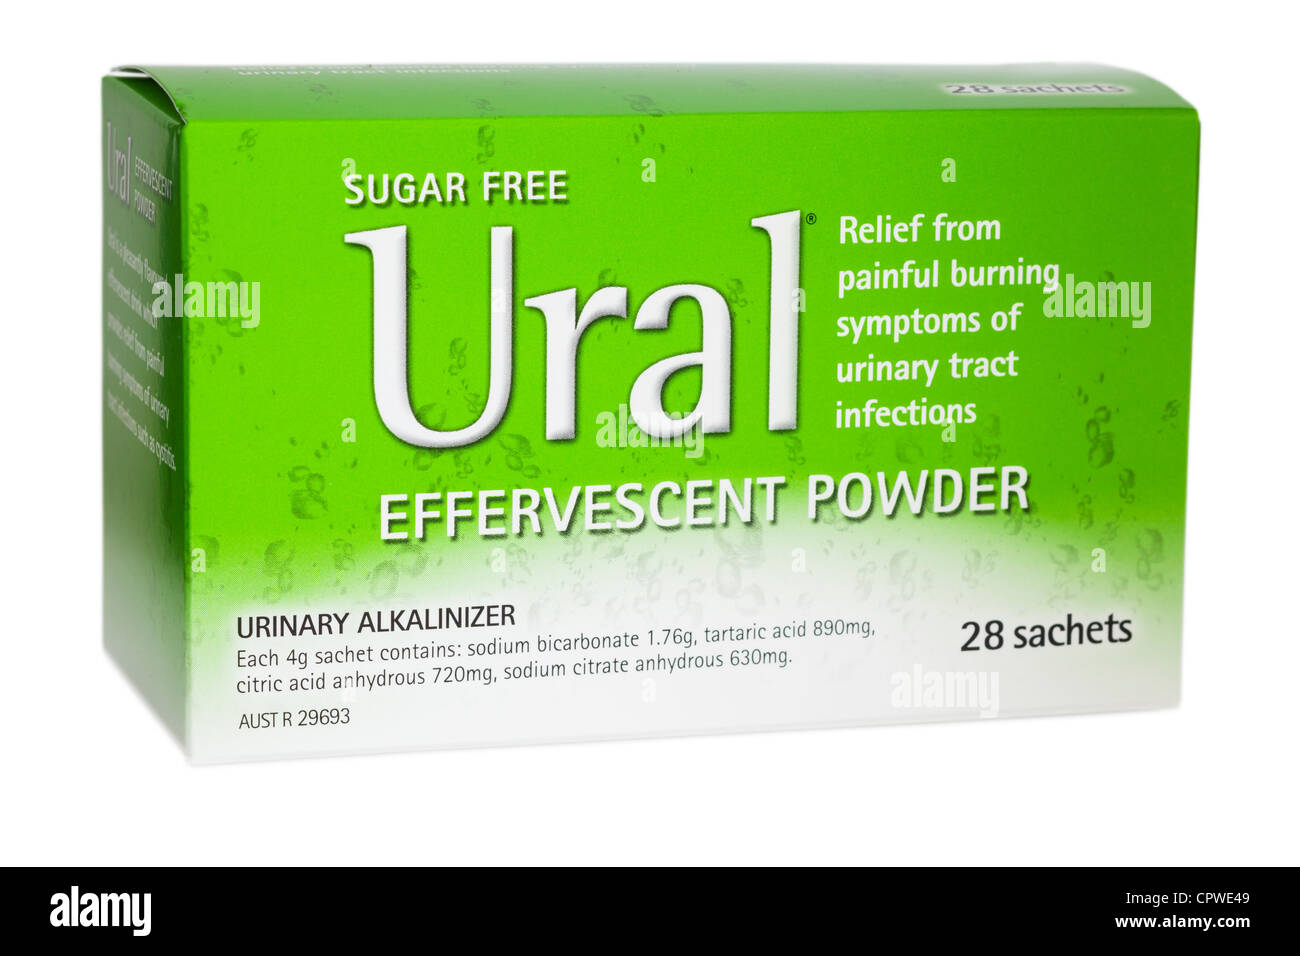 Package of Ural Effervescent Powder urinary alkalizer. - Stock Image